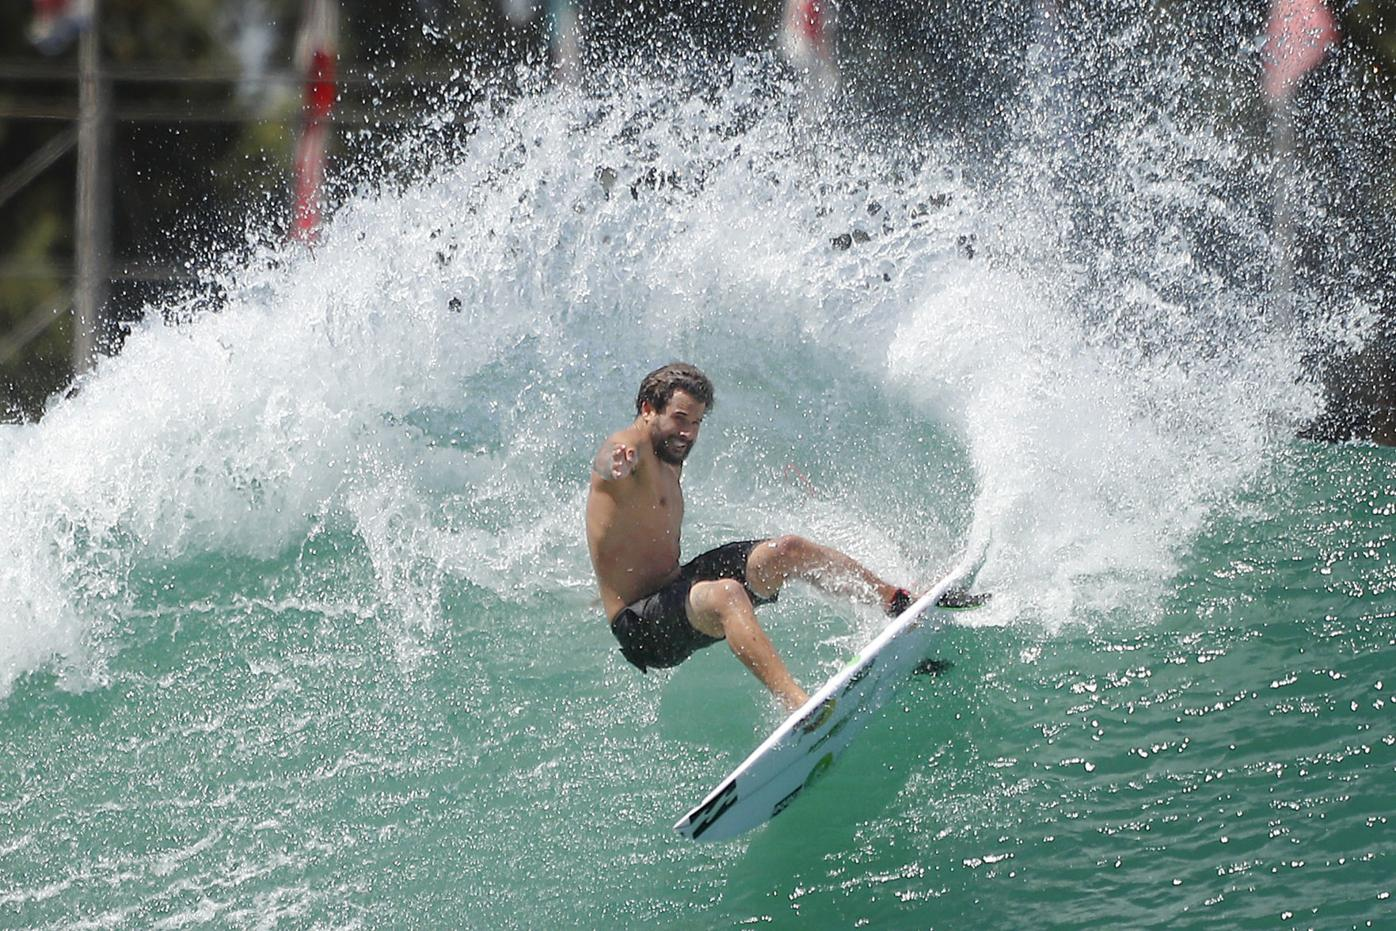 Surfing Accessibility